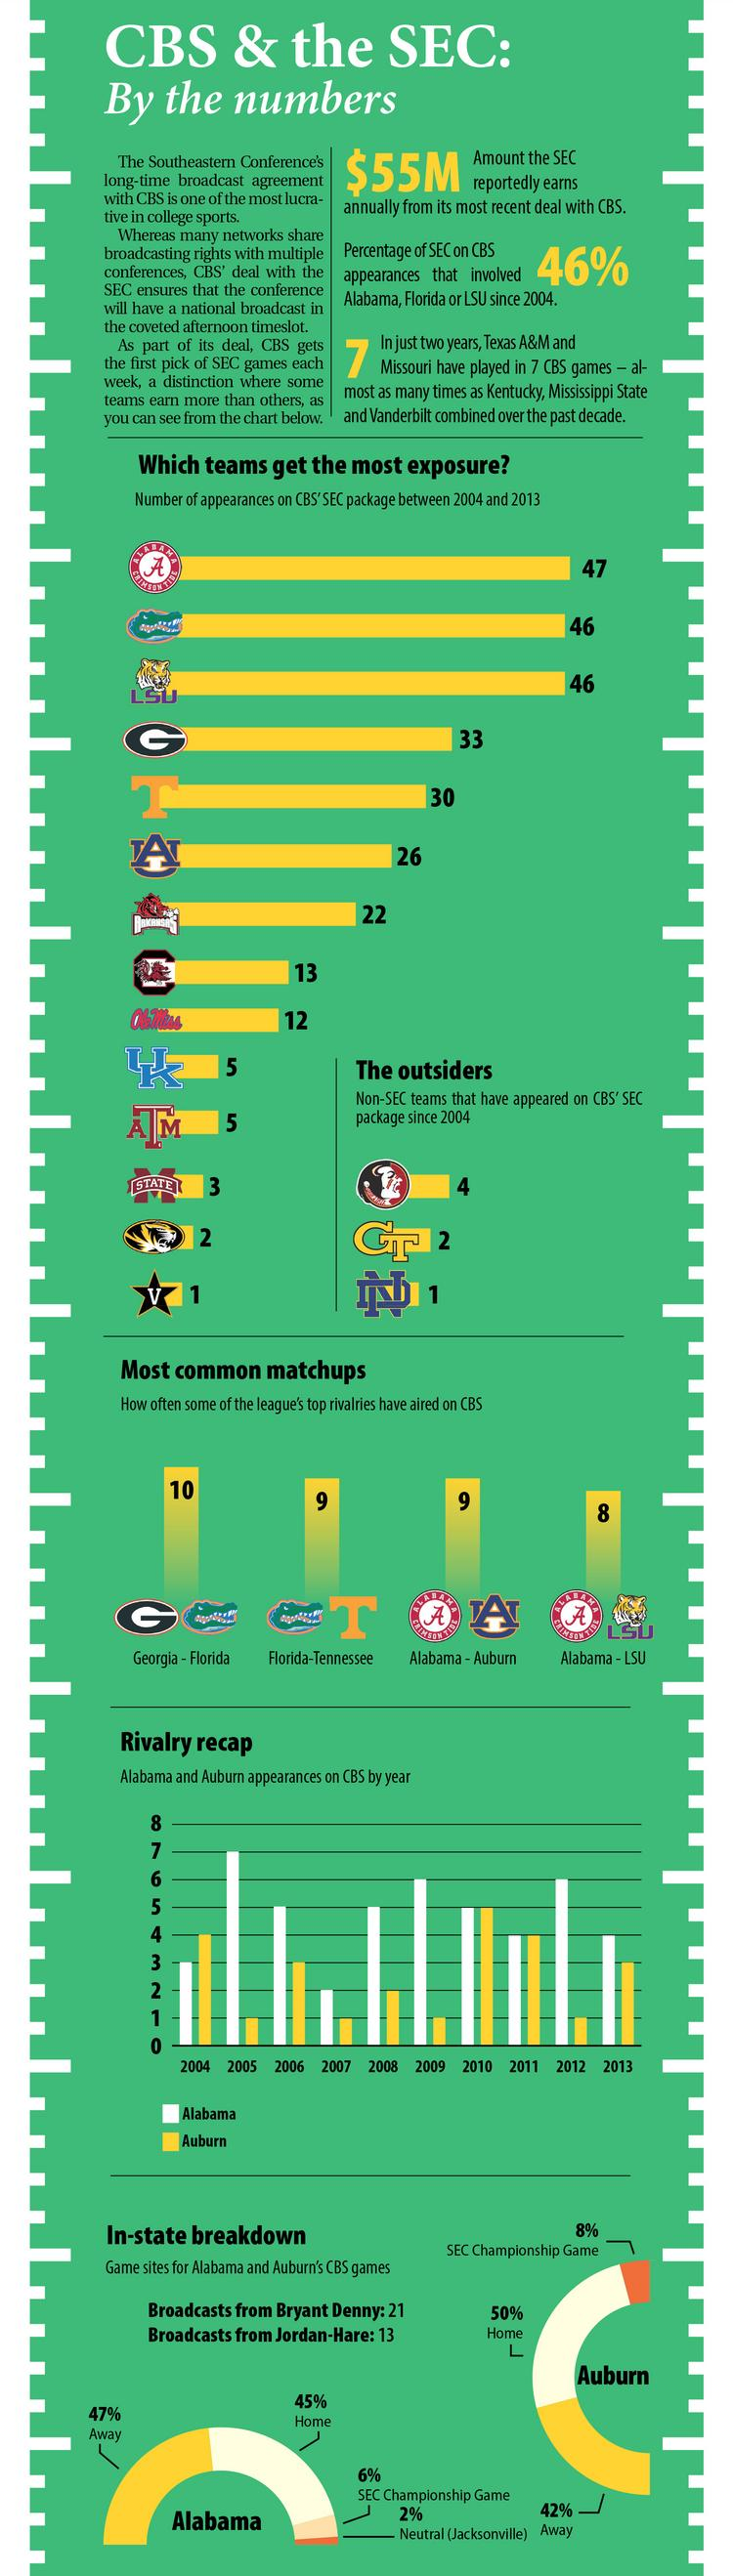 The SEC has a lucrative agreement with CBS that gives the conference a guaranteed national broadcast throughout most of the college football season. This graphic looks at which teams have received the most exposure from the deal over the past decade.